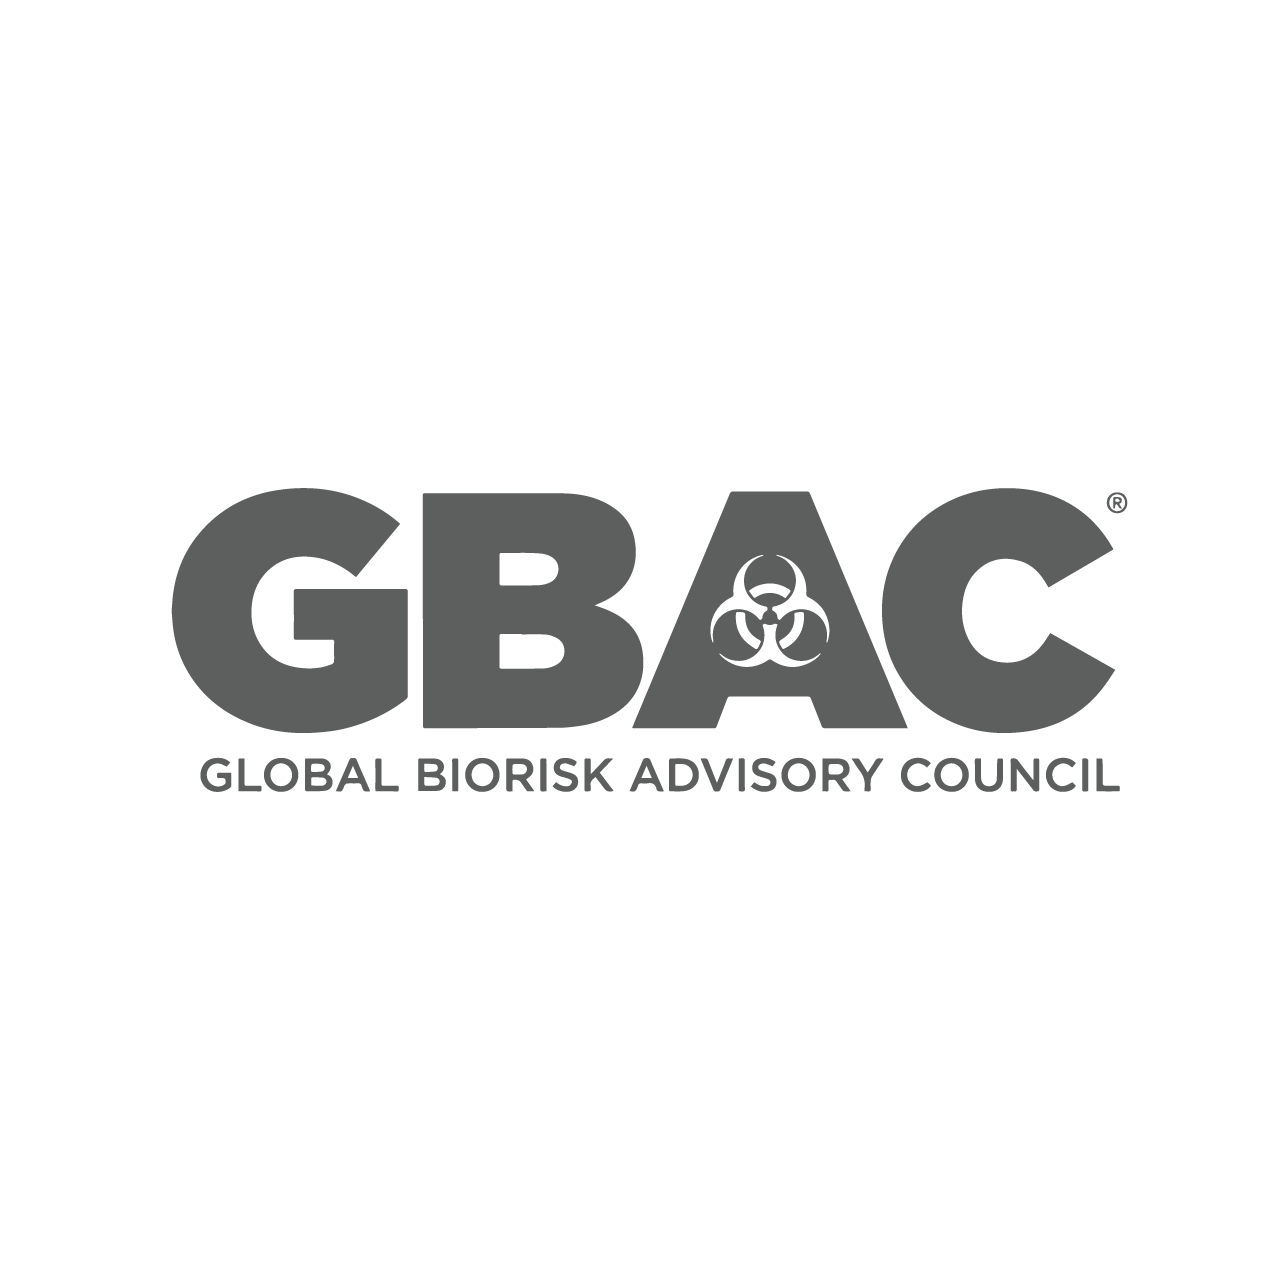 gbac-affiliatio-nak-building-services-south-florida